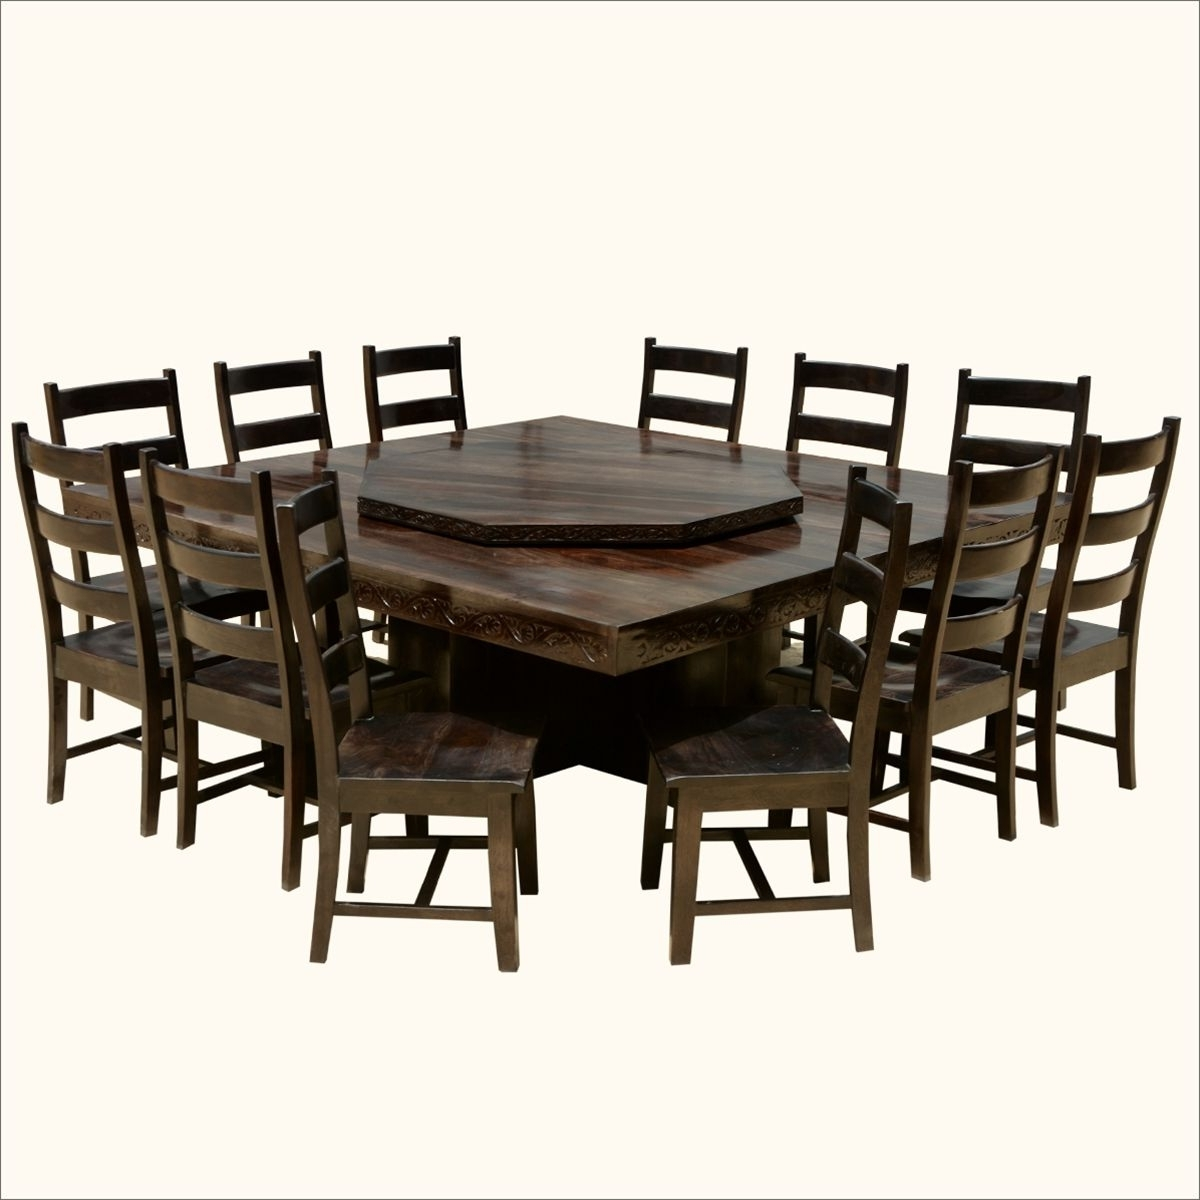 Trendy Laurent 7 Piece Rectangle Dining Sets With Wood Chairs With Regard To Modern Pioneer Solid Wood Lazy Susan Pedestal Dining Table & Chair (View 22 of 25)